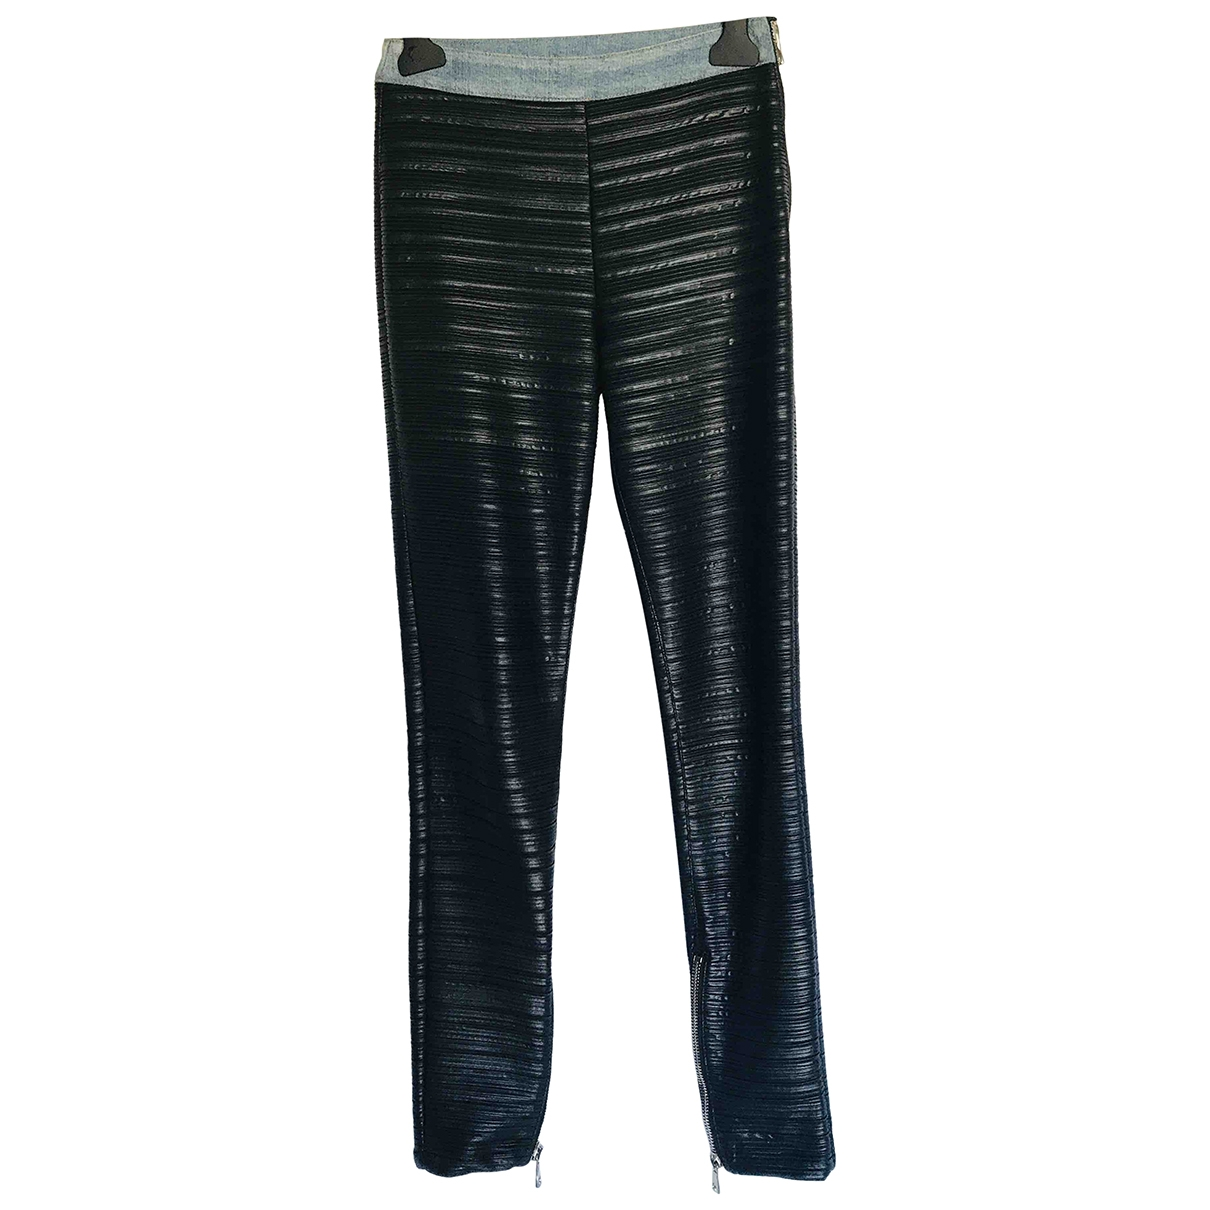 Balmain \N Black Leather Trousers for Women 36 FR